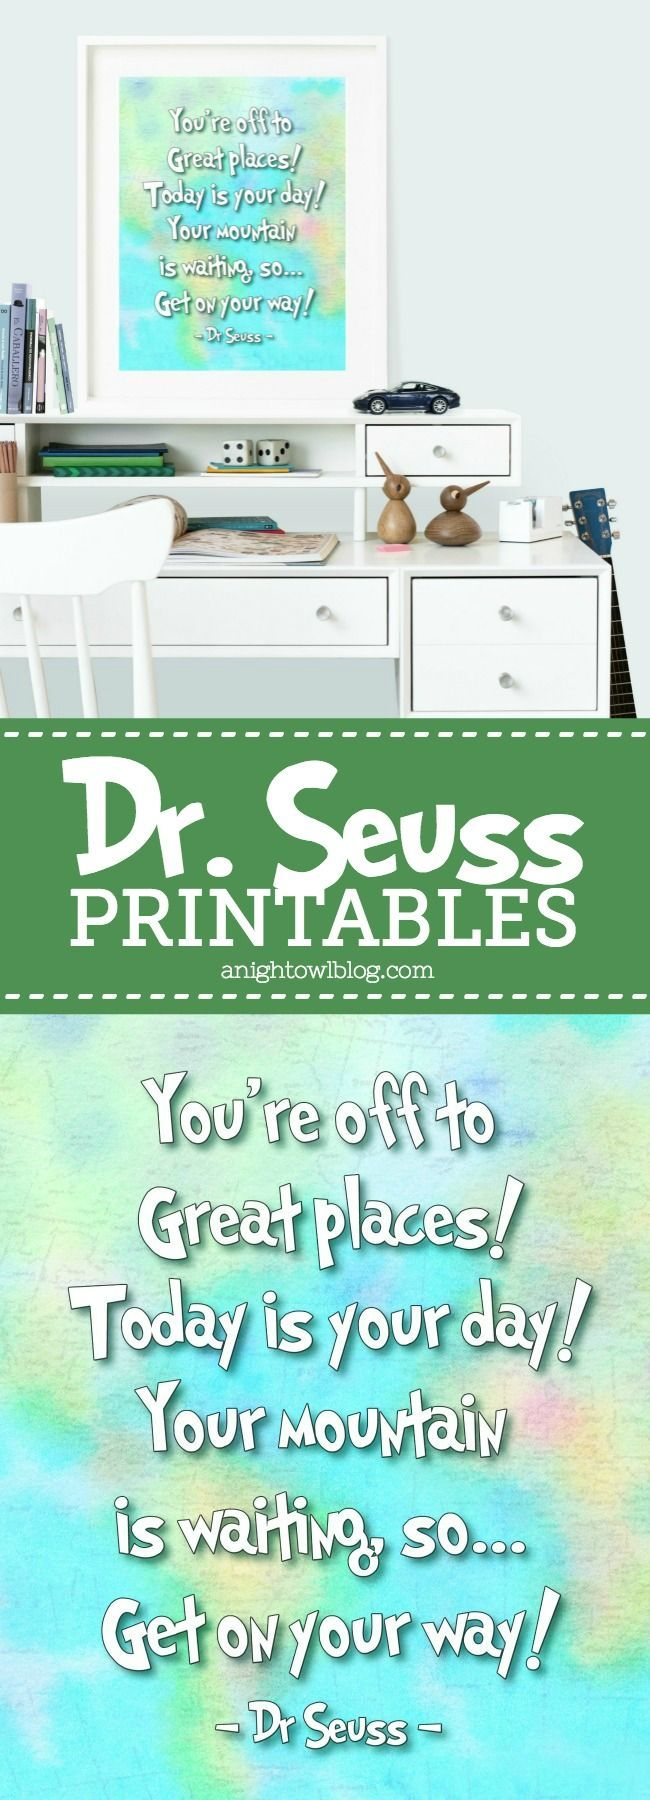 241 best Fun Printables! images on Pinterest | Free printable, Free ...